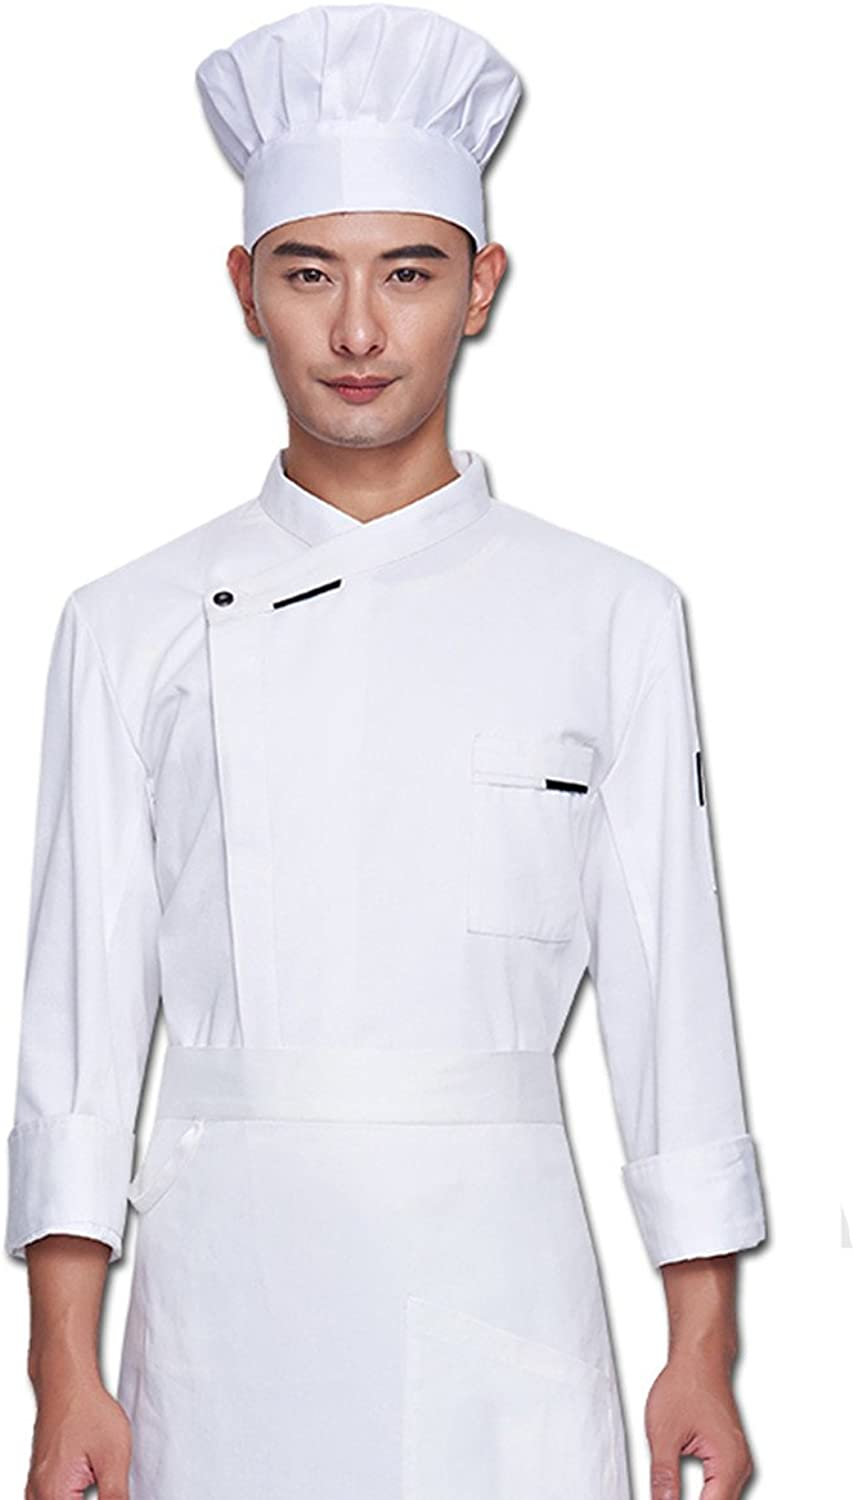 XINFU Chef's Uniform Uniexe Long Sleeved Restaurant Kitchen Cooking Hidden Single Breasted Chef Coat